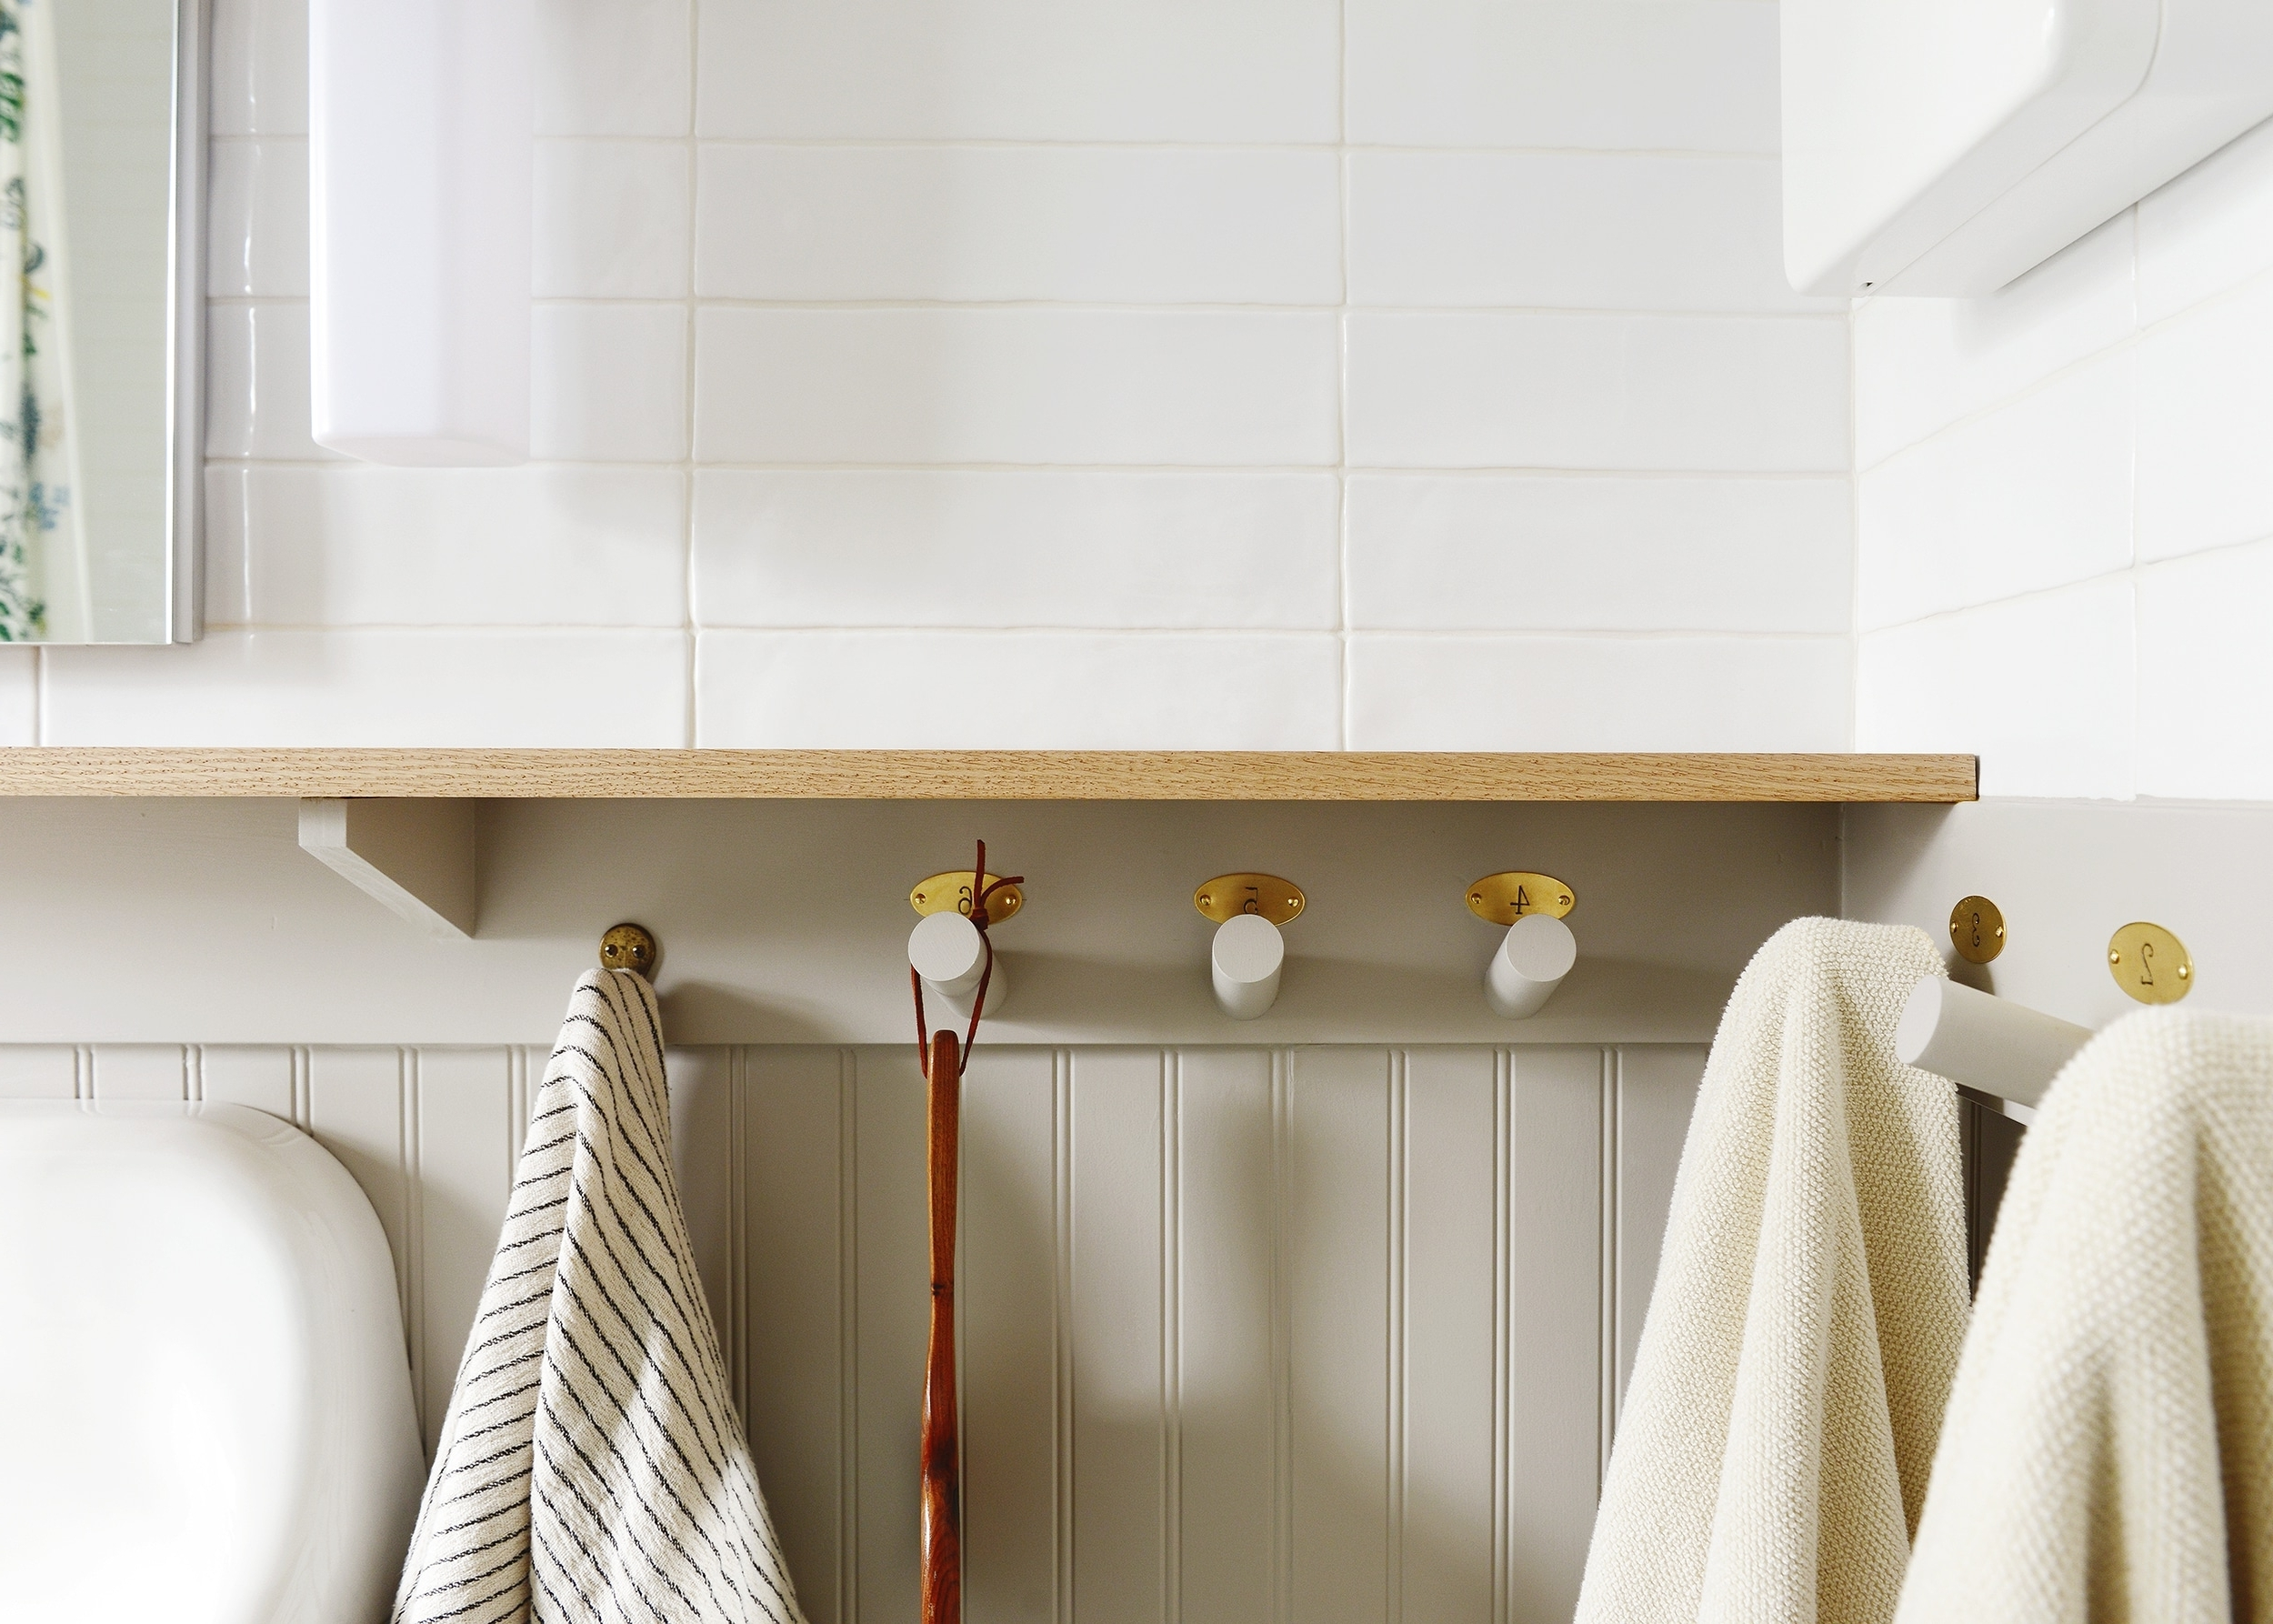 Our Diy Beadboard Wall Treatment With Hooks + Countertop Using Beadboard In A Small Bathroom